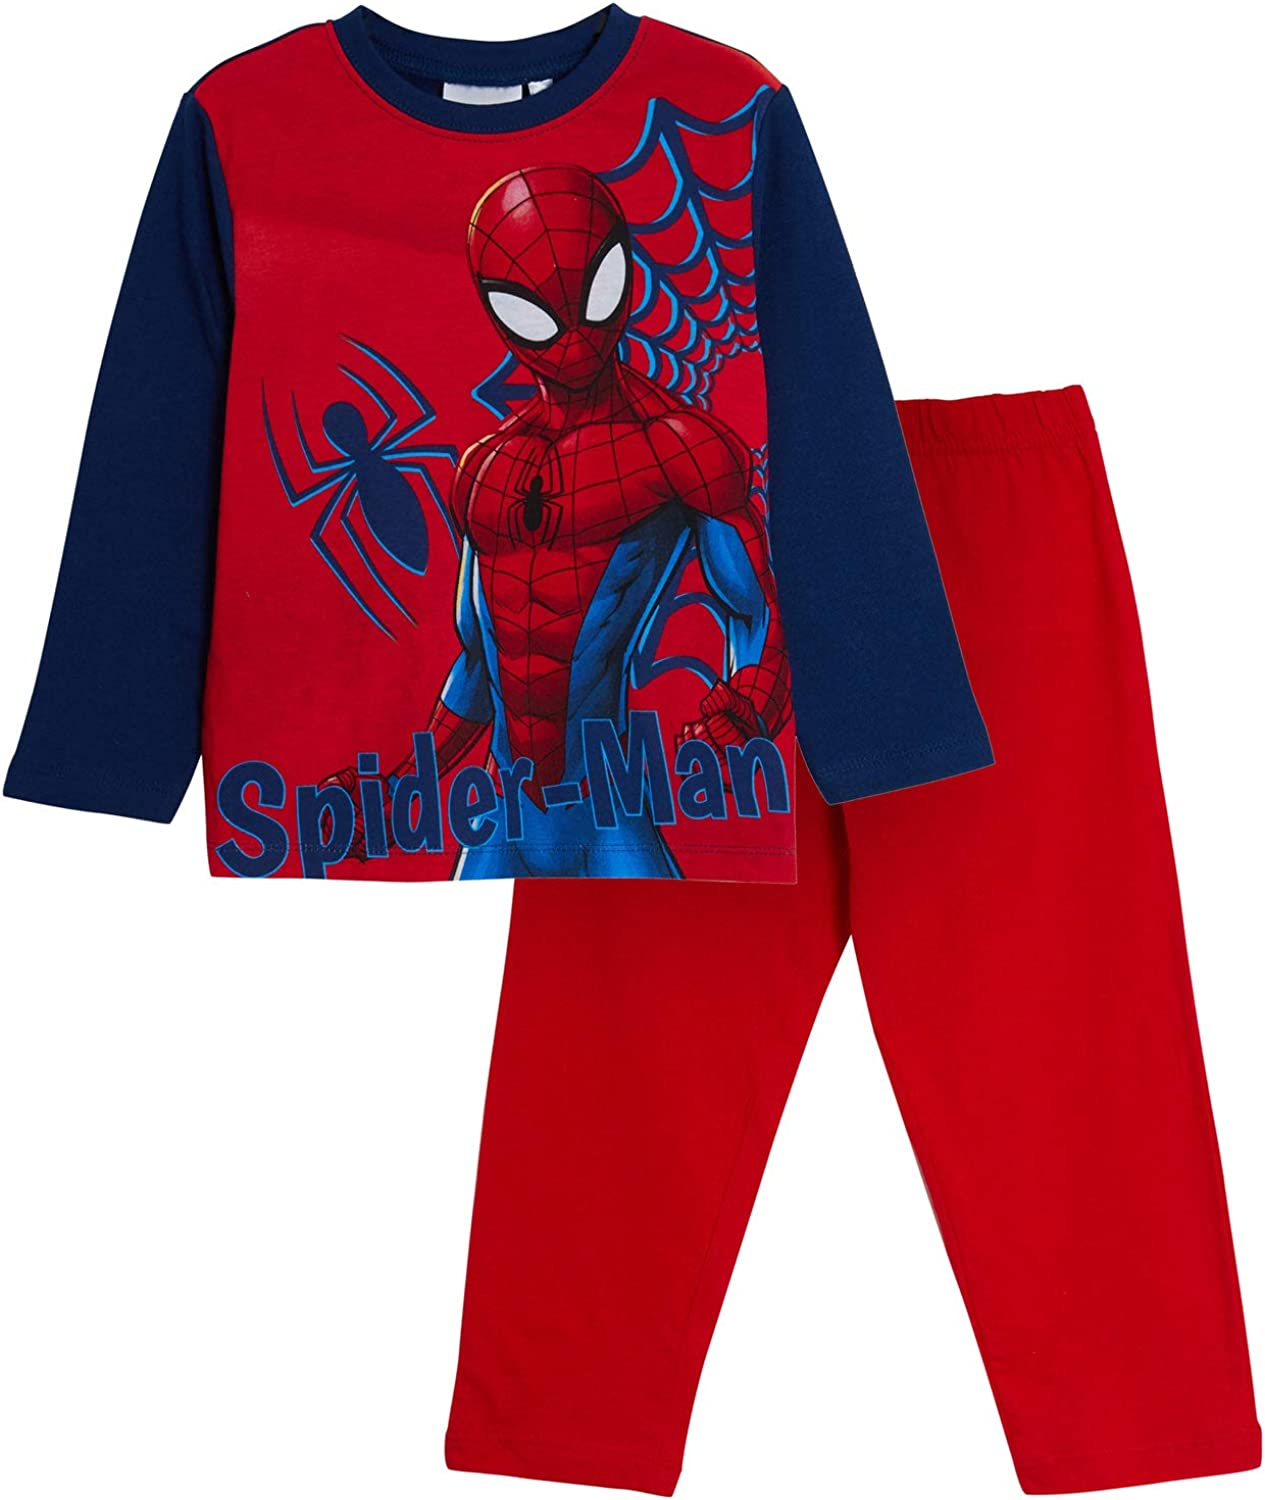 Marvel Spiderman Pigiama Bambino Avengers Full Length Pjs Super Hero Nightwear